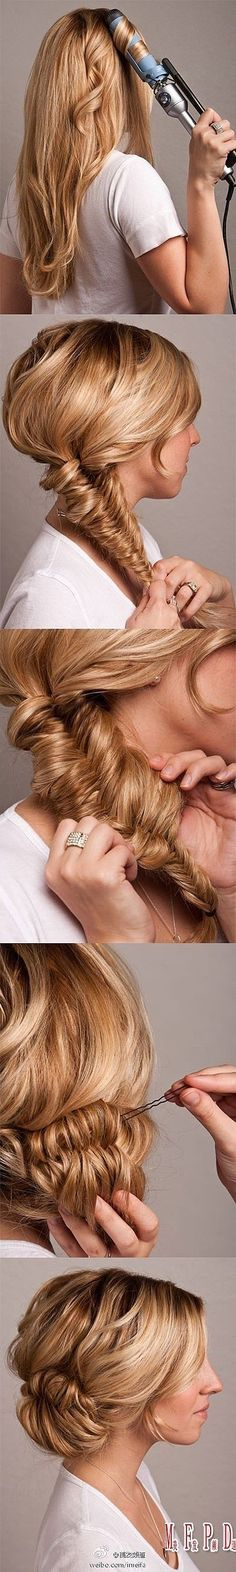 fish tail braid made easy with this great hair tutorial. Looks like you just need a curling iron and hair pins. Great Hair, Love Hair, Gorgeous Hair, Awesome Hair, Beautiful, My Hairstyle, Pretty Hairstyles, Wedding Hairstyles, Wedding Updo